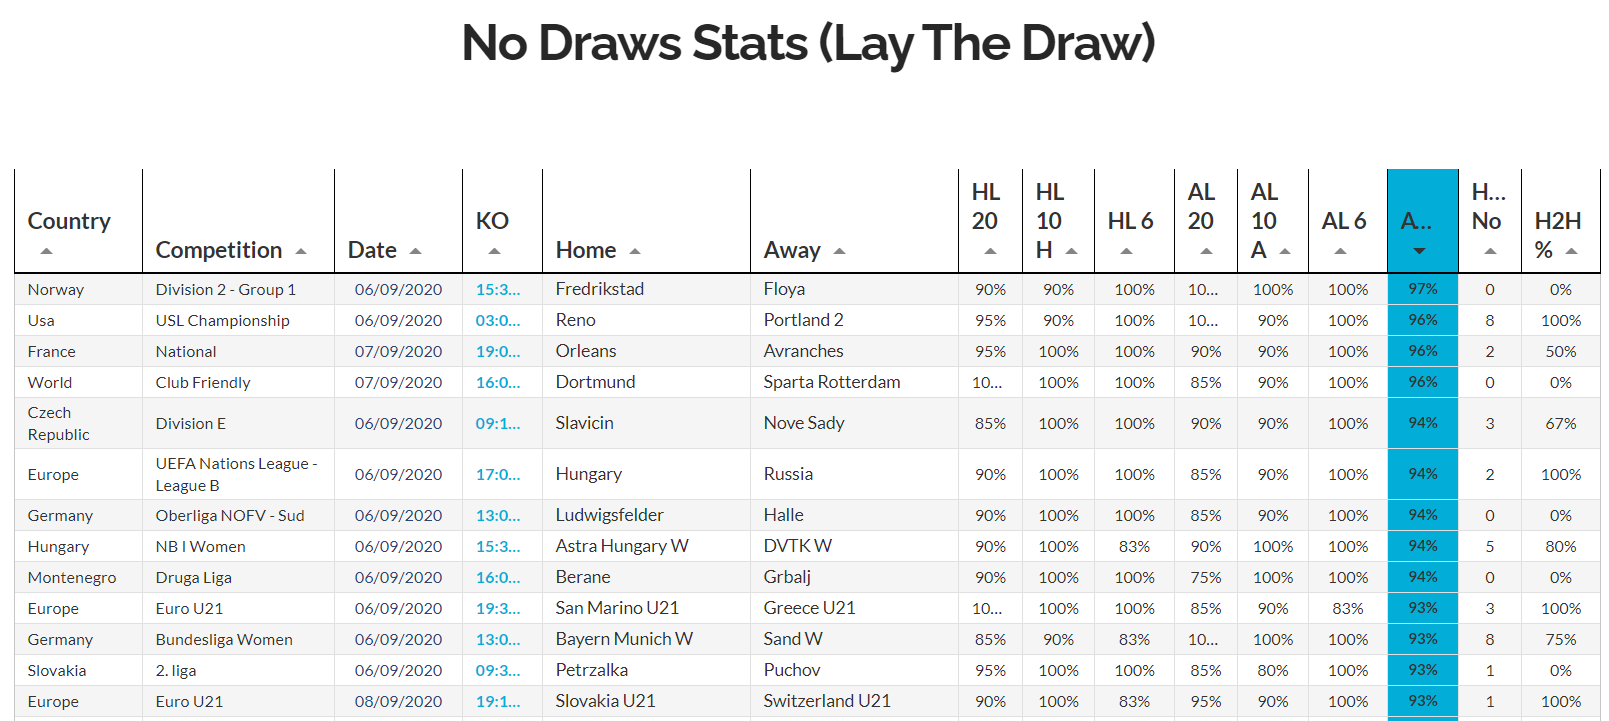 Lay The Draw pro soccer stats